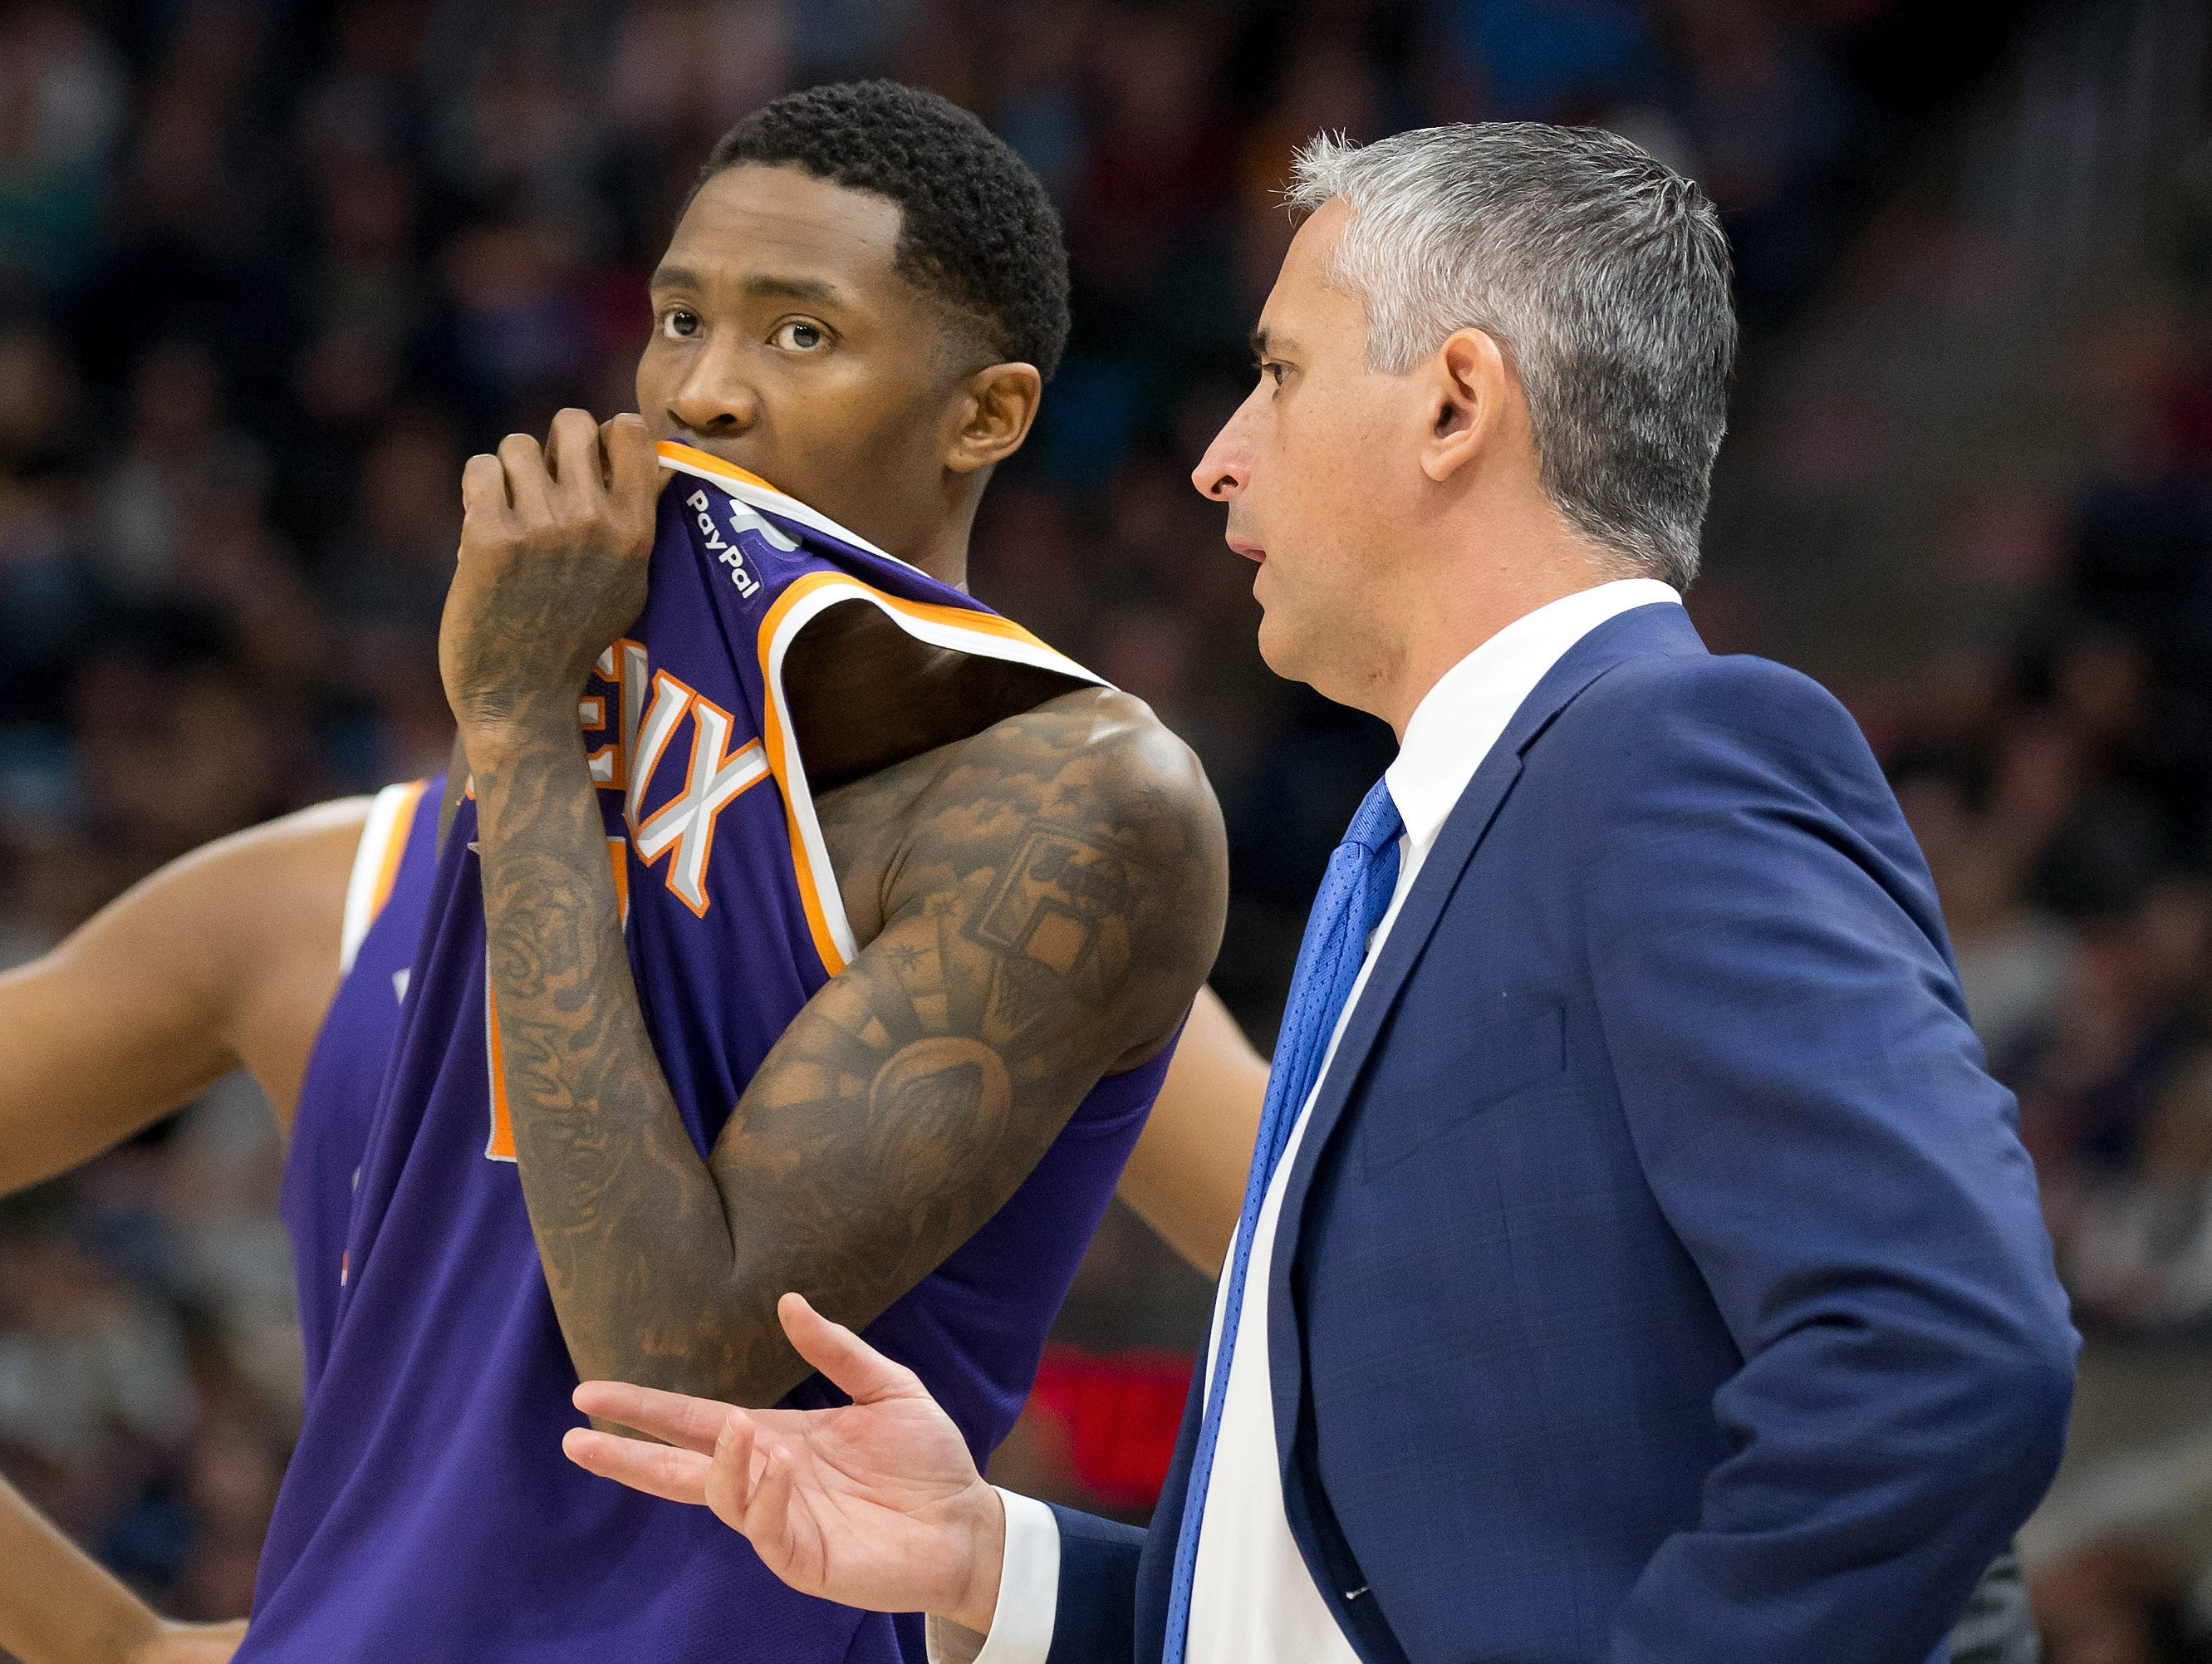 Feb 6, 2019; Salt Lake City, UT, USA; Phoenix Suns head coach Igor Kokoskov talks with guard Jamal Crawford (11) during the first half against the Utah Jazz at Vivint Smart Home Arena. Mandatory Credit: Russ Isabella-USA TODAY Sports